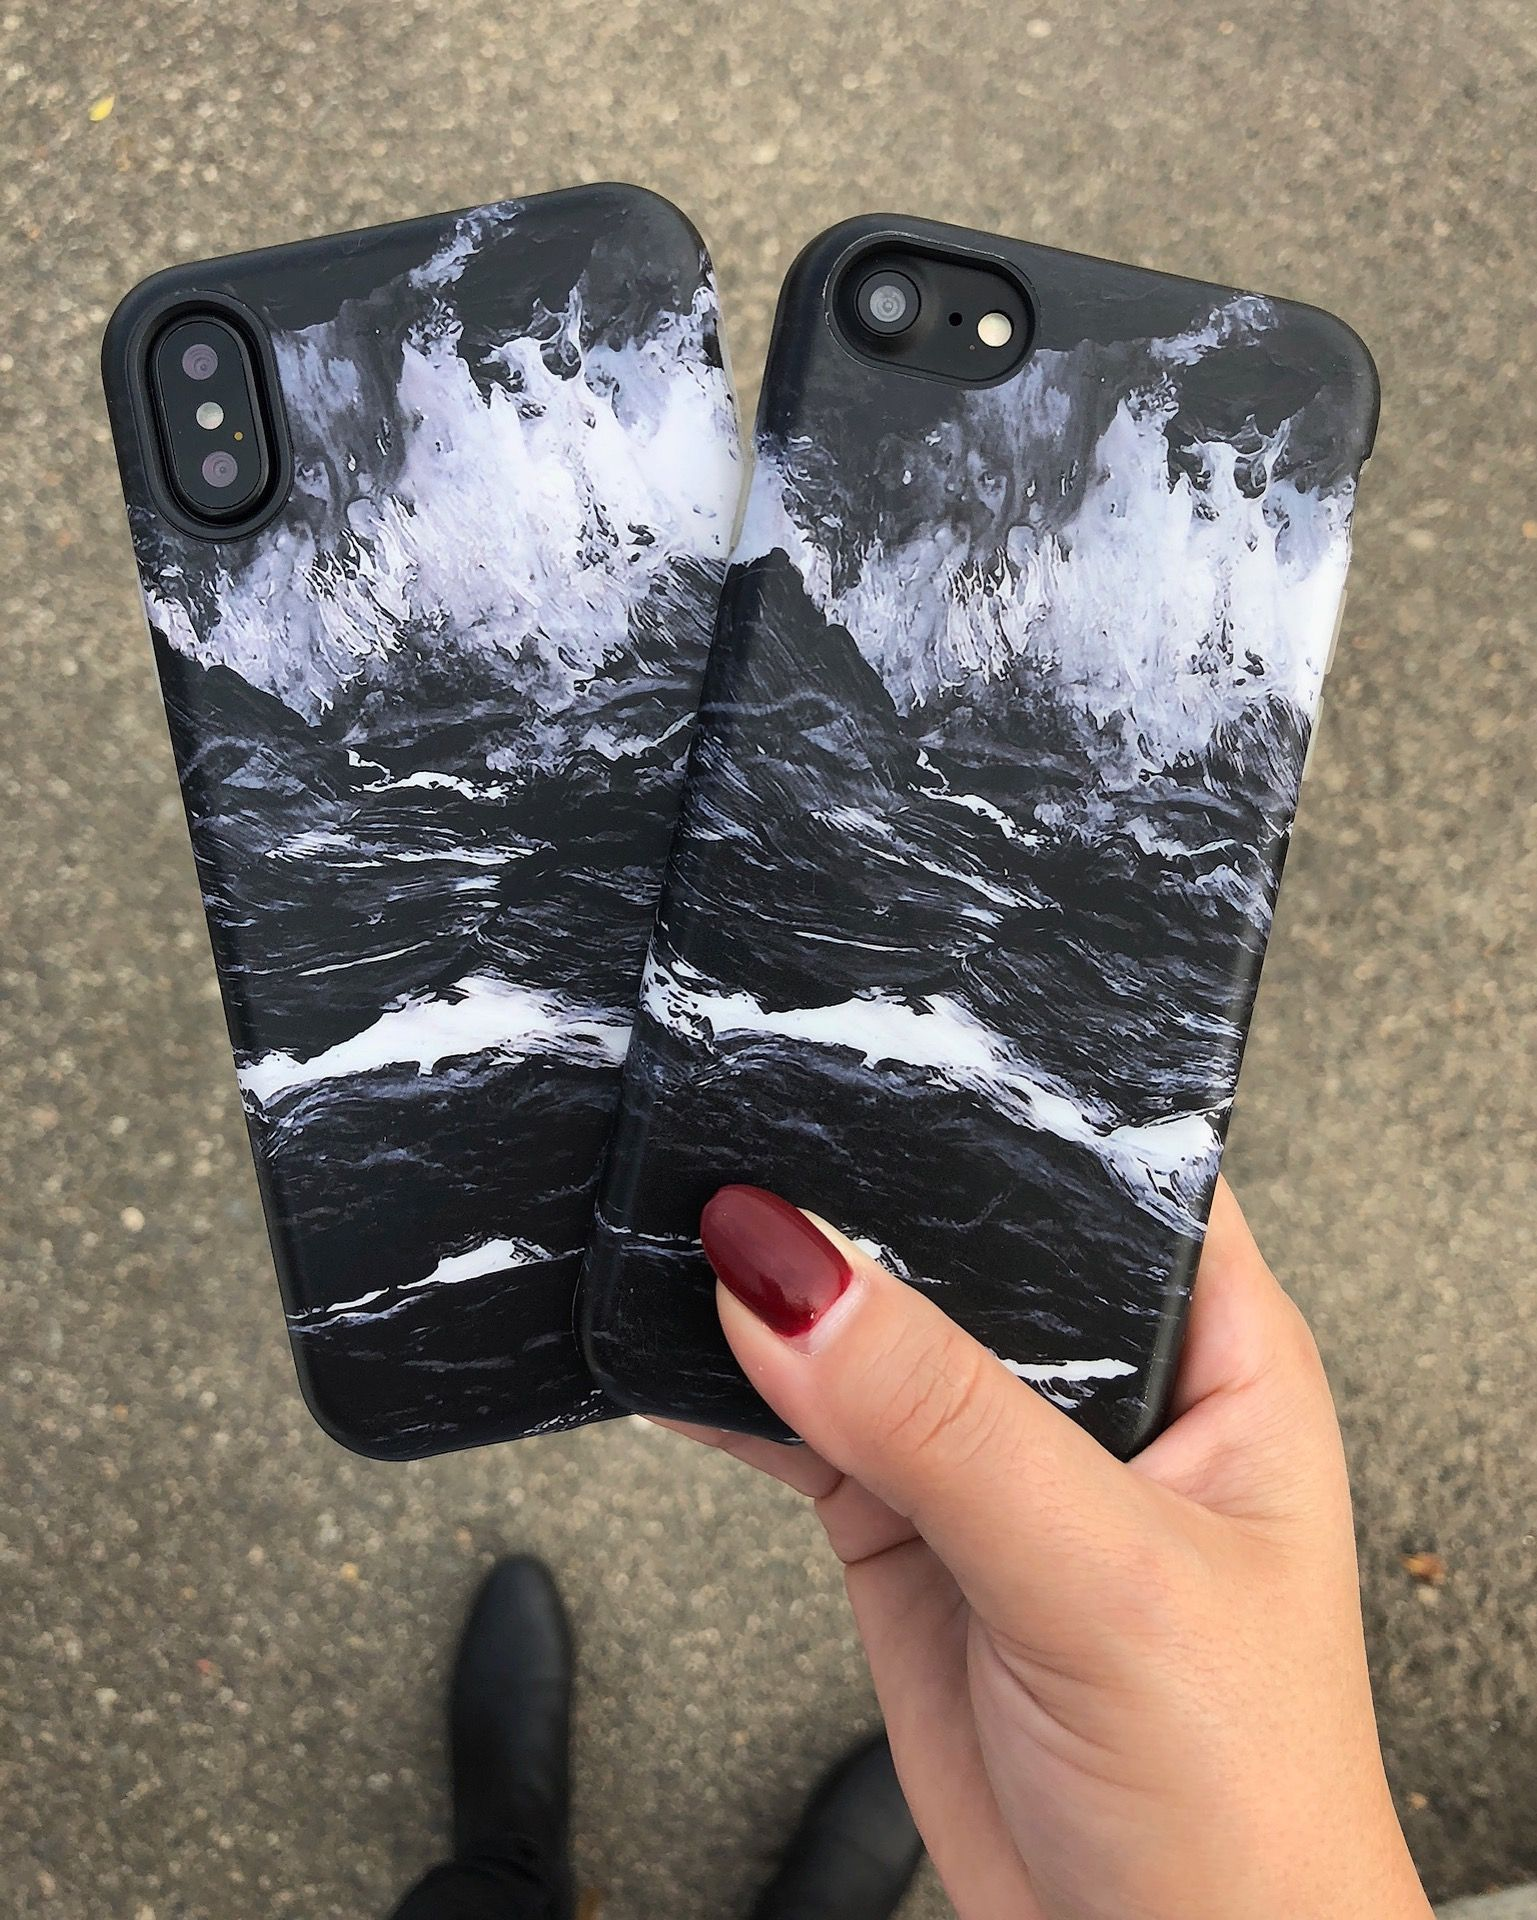 casing black marble